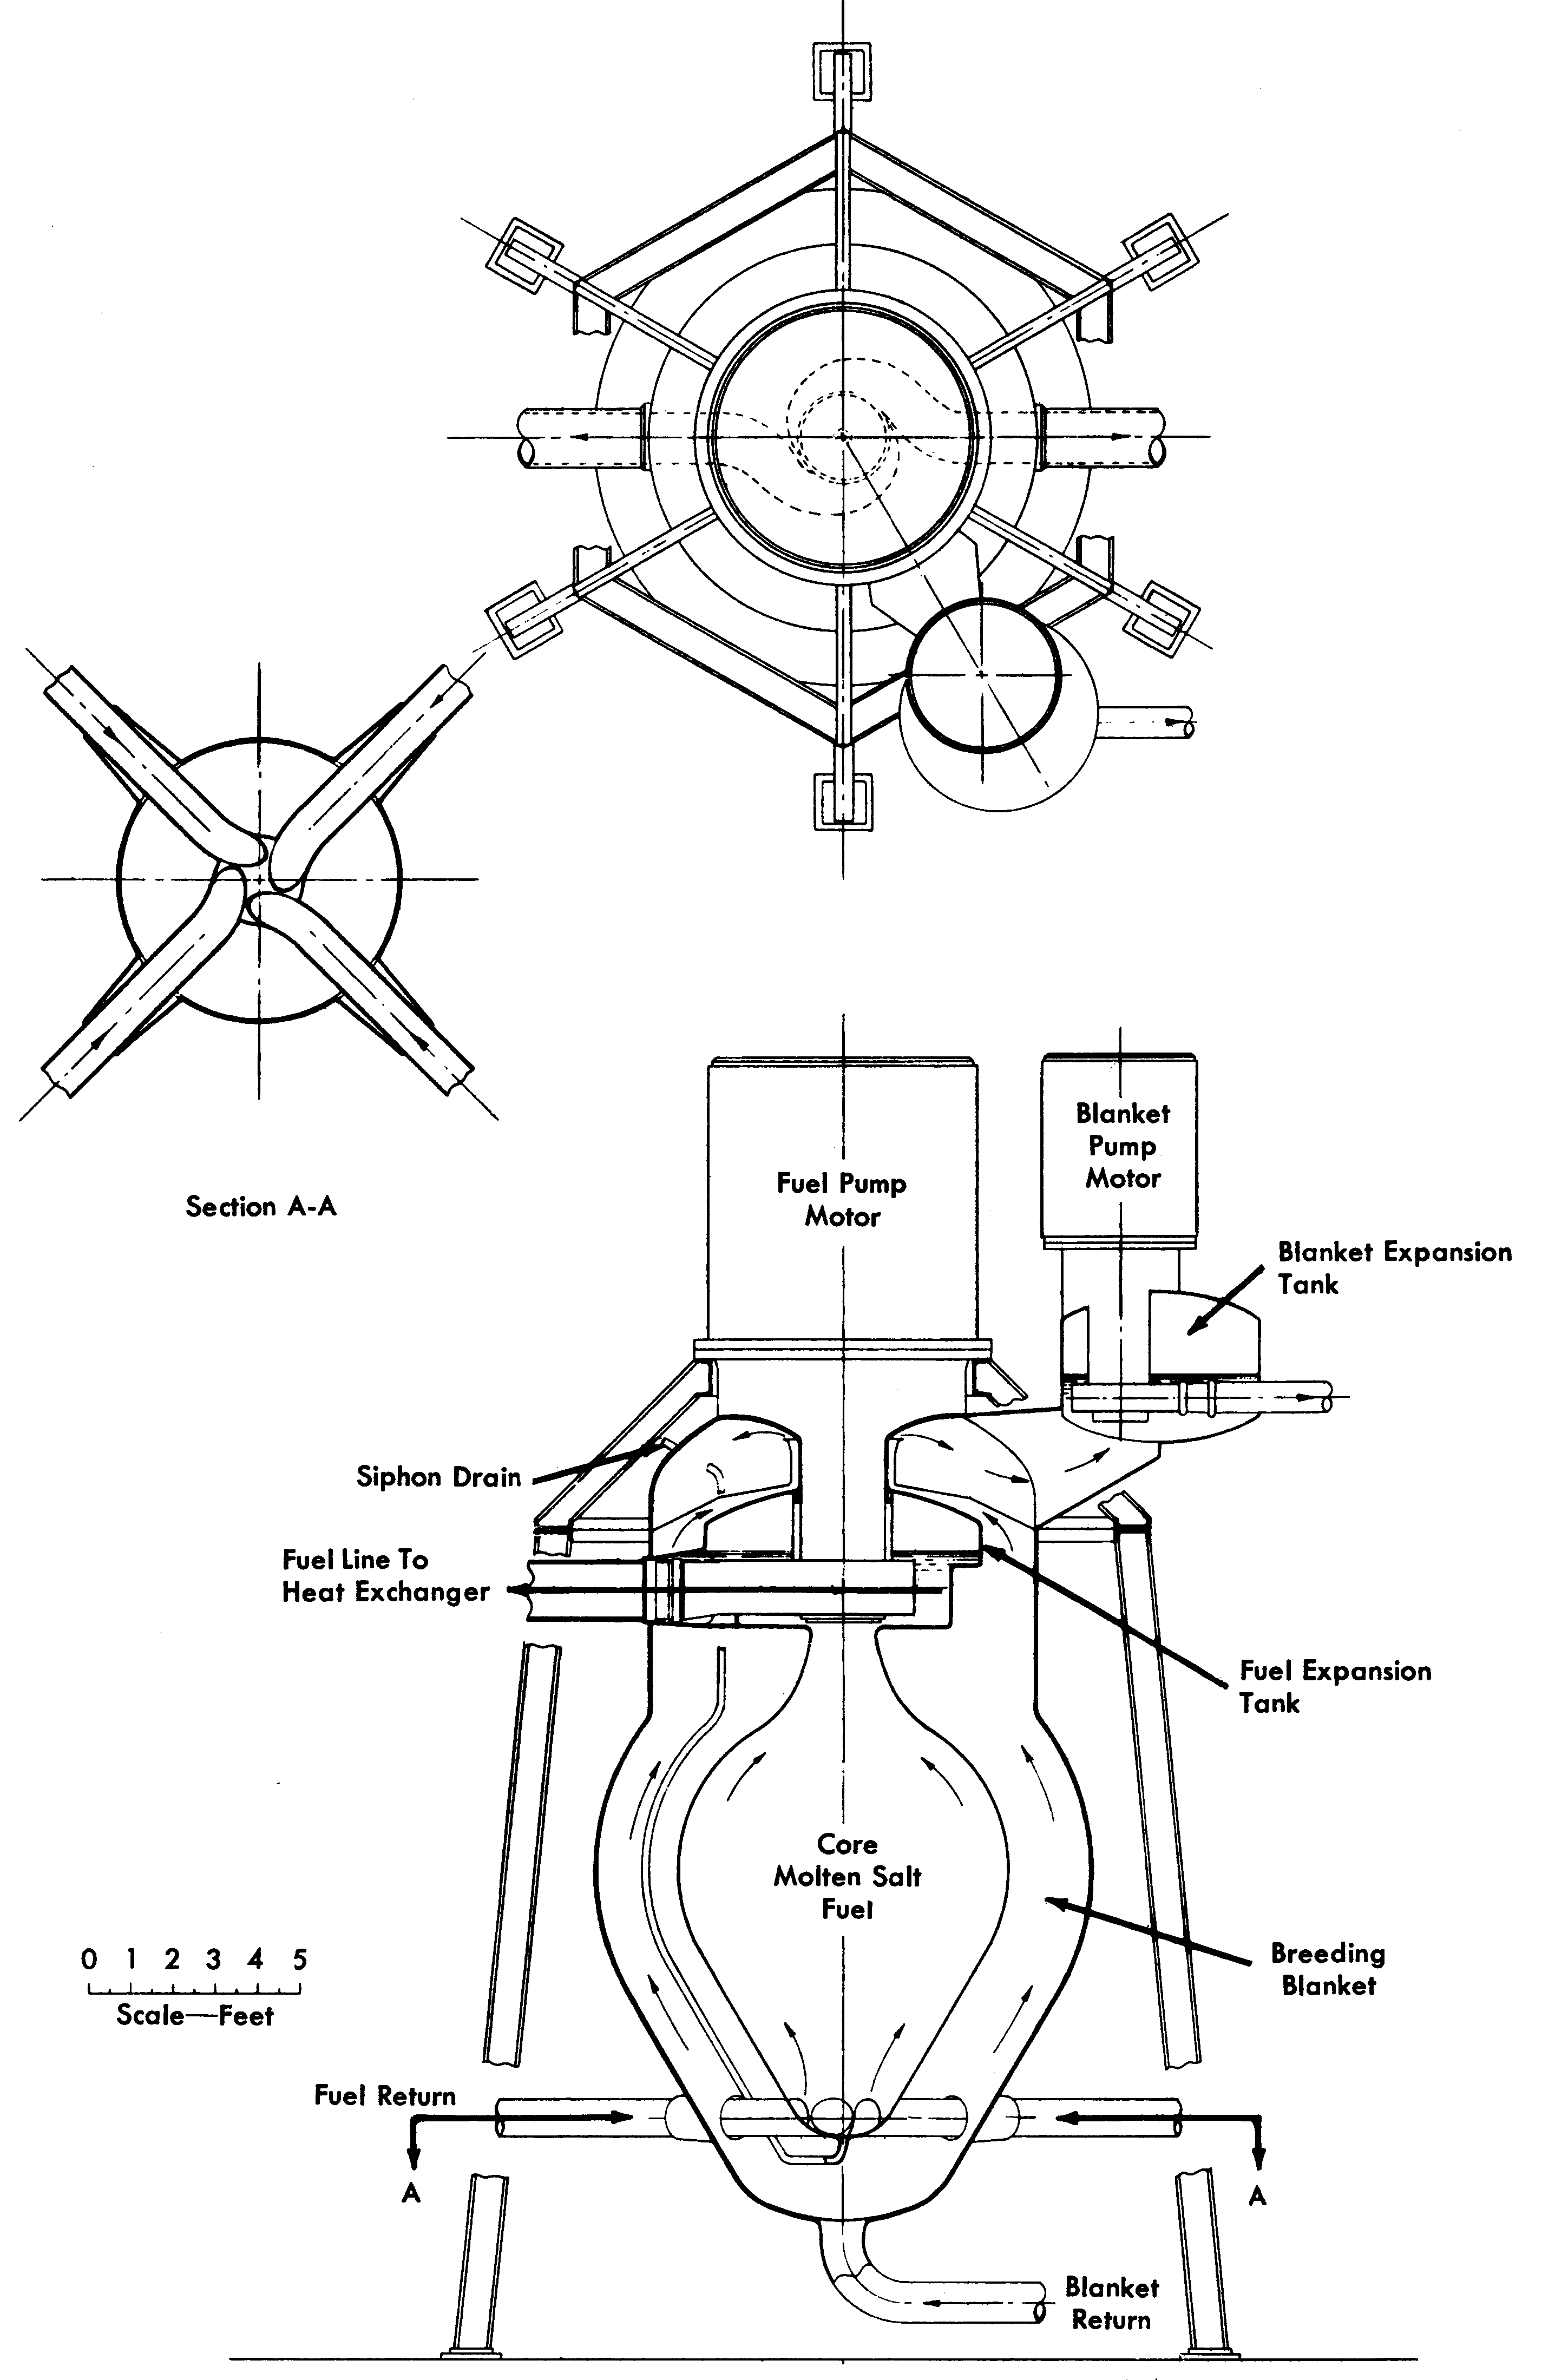 Twofluid Msbr Core Designs Energy From Thorium. An 1958 Concept For A Twofluid Moltensalt Breeder Reactor. Wiring. Electric Fluid Focus Engine Diagram At Scoala.co